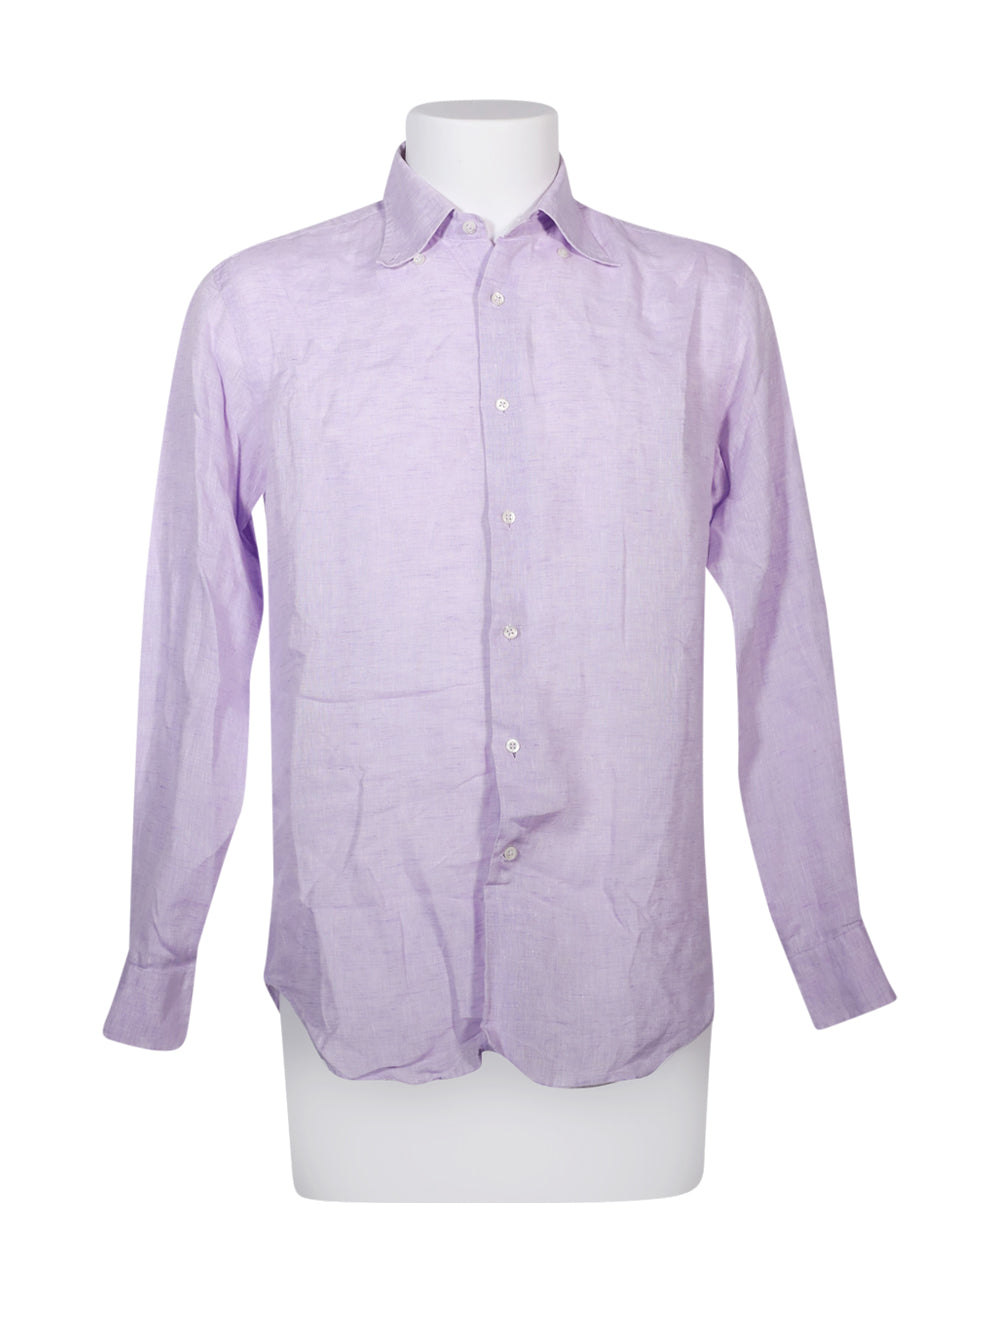 Front photo of Preloved Bagutta Violet Man's shirt - size 40/L